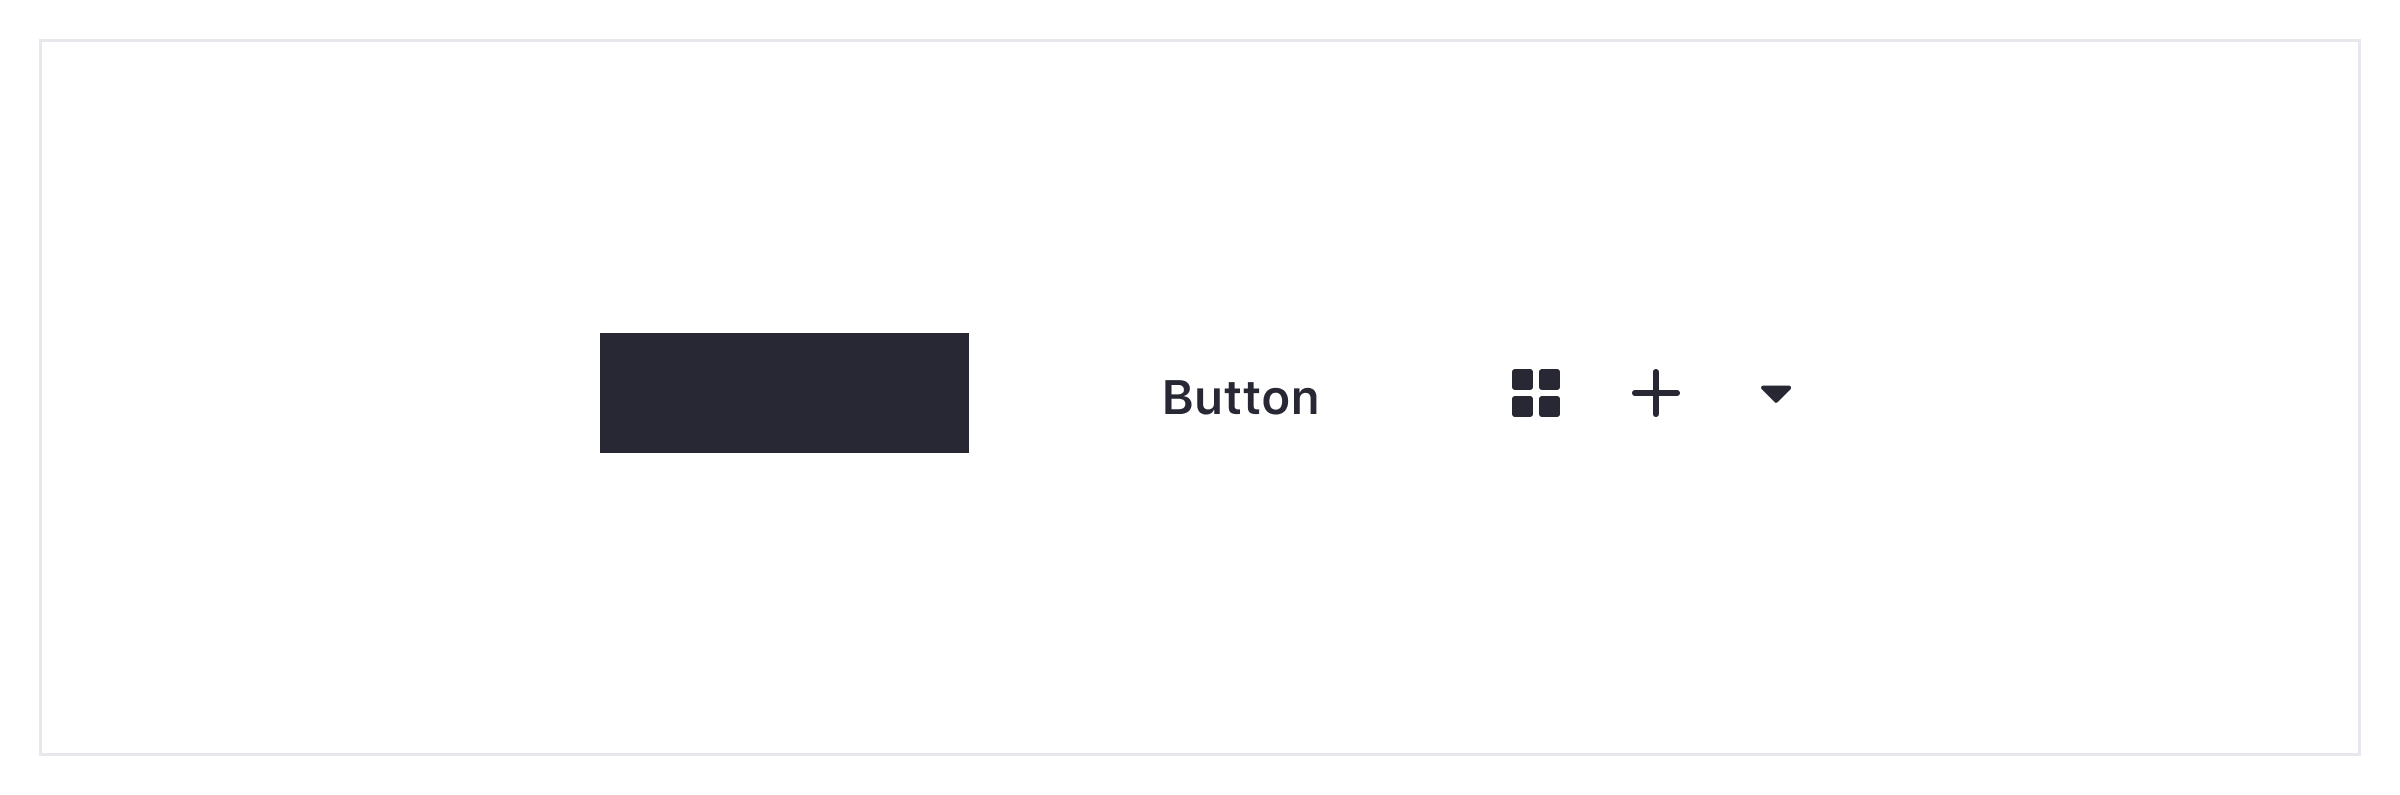 a group of divided elements: a rectangle shape, a button text and 3 icons